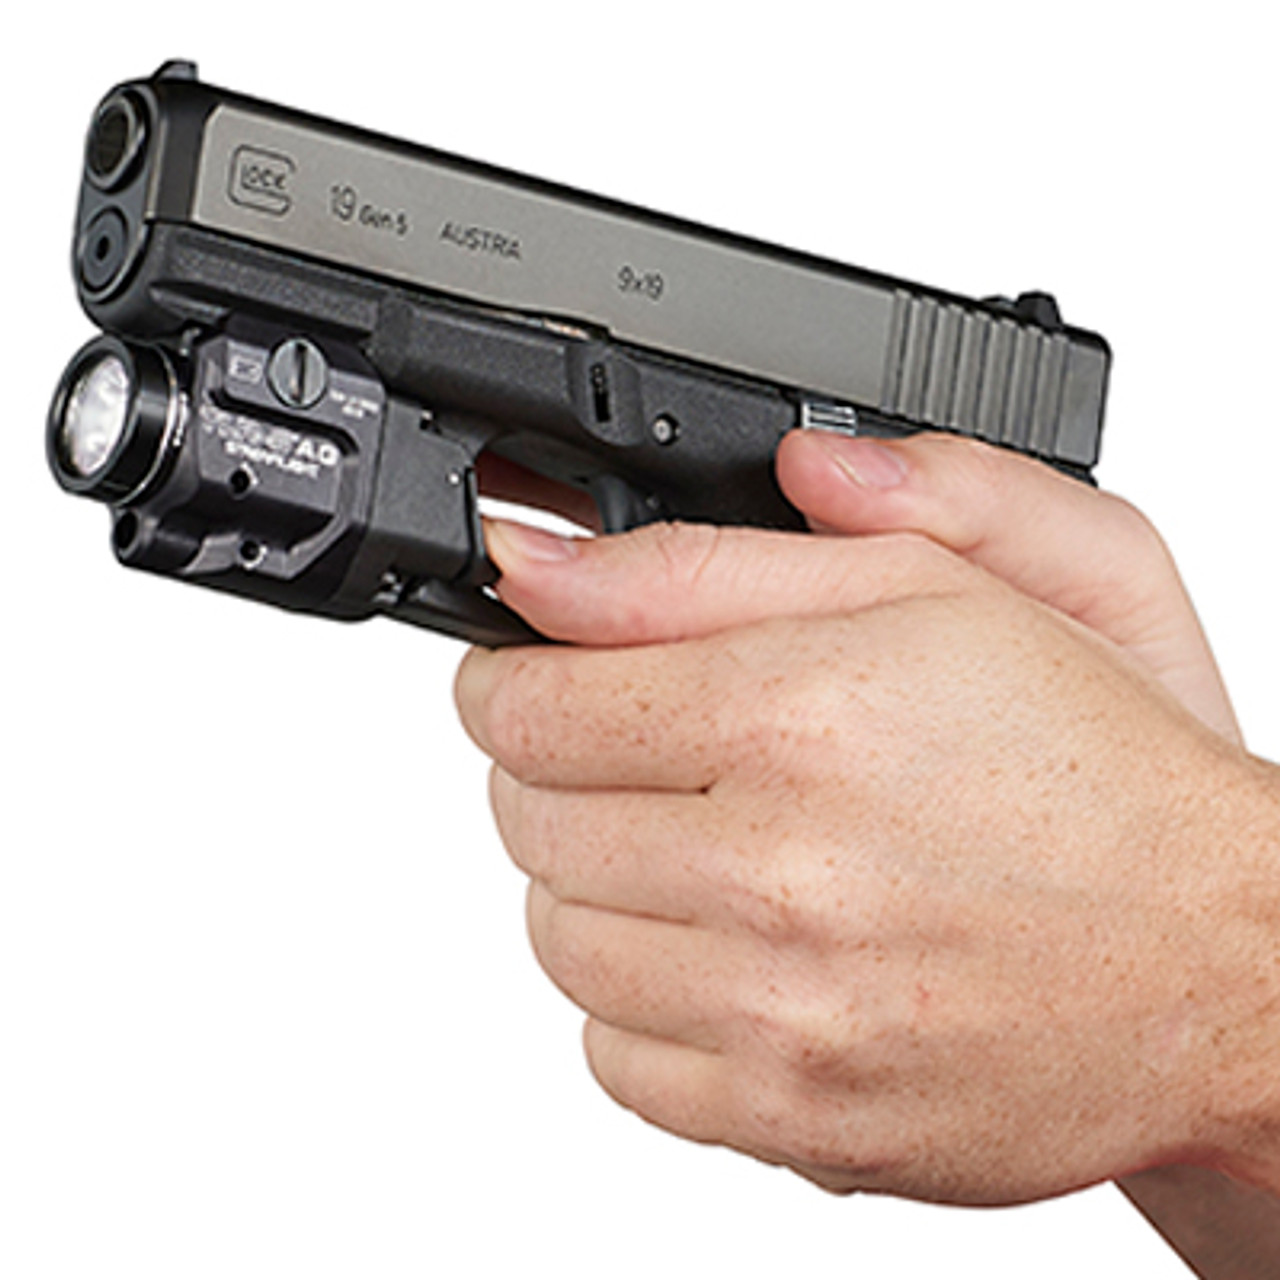 Streamlight - TLR-8®A G GUN LIGHT WITH GREEN LASER AND REAR SWITCH OPTIONS